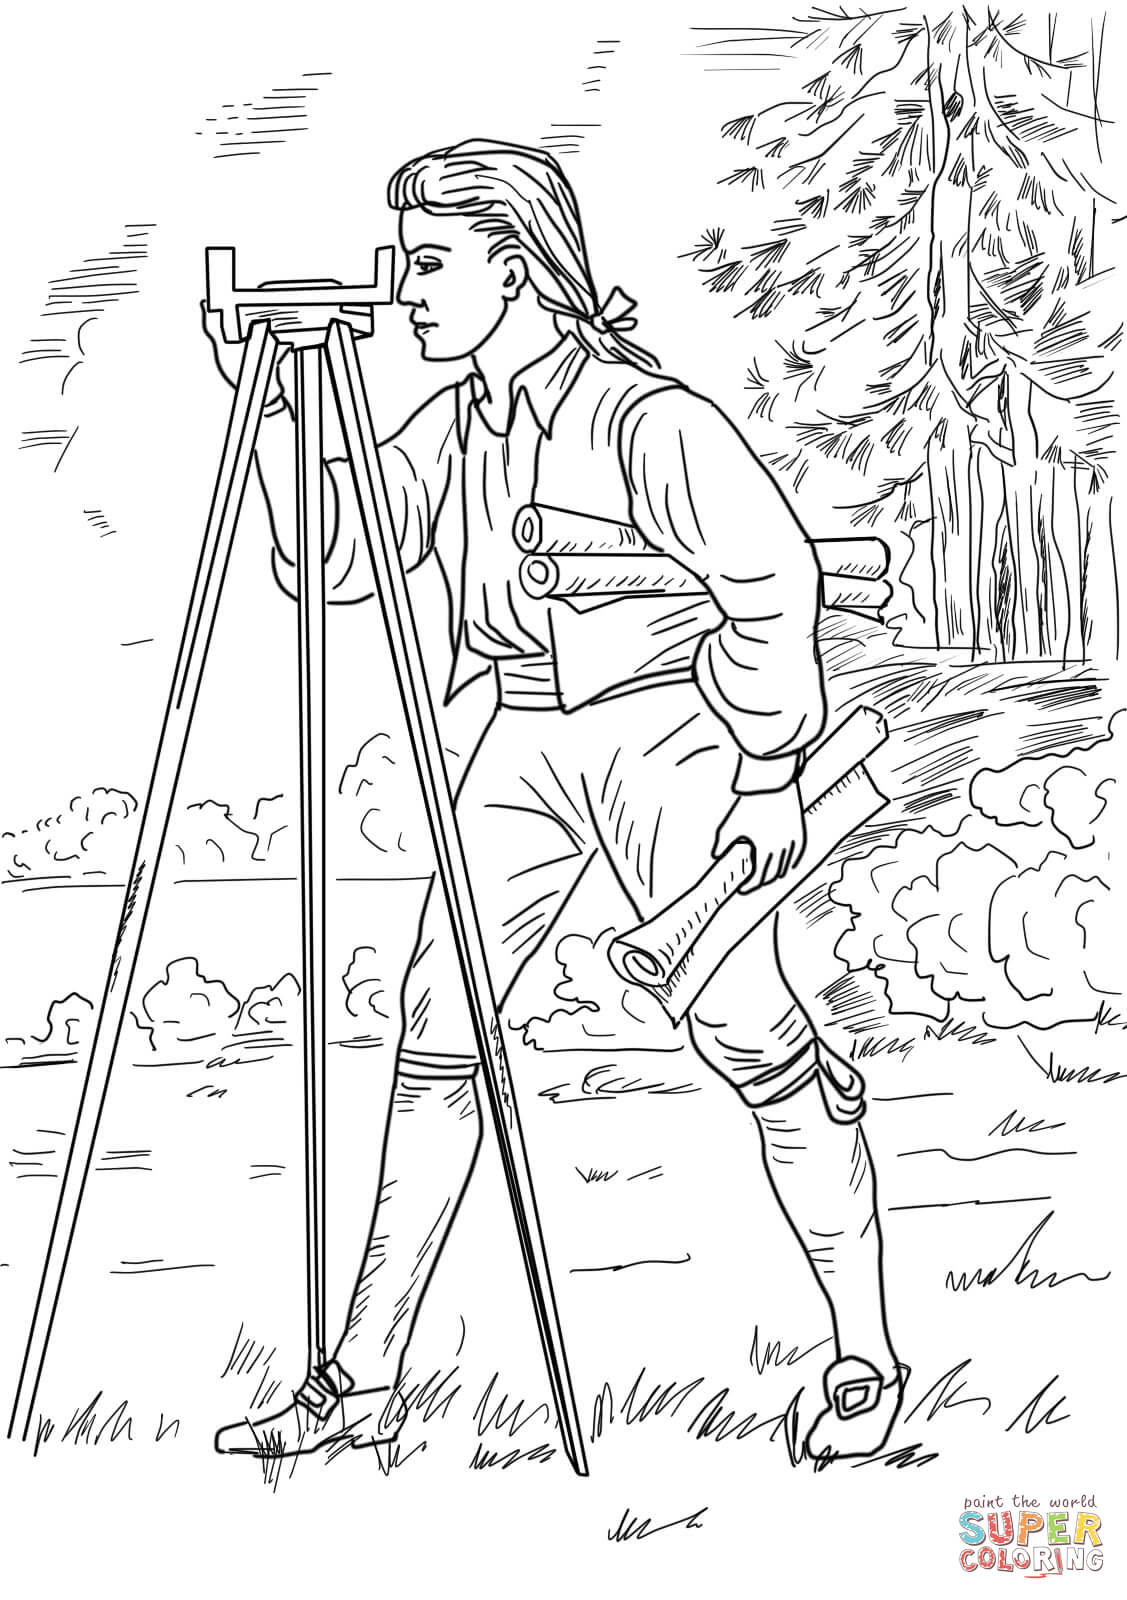 George Washington Carver Coloring Page Young George Washington Surveyor And Mapmaker Coloring Page Free